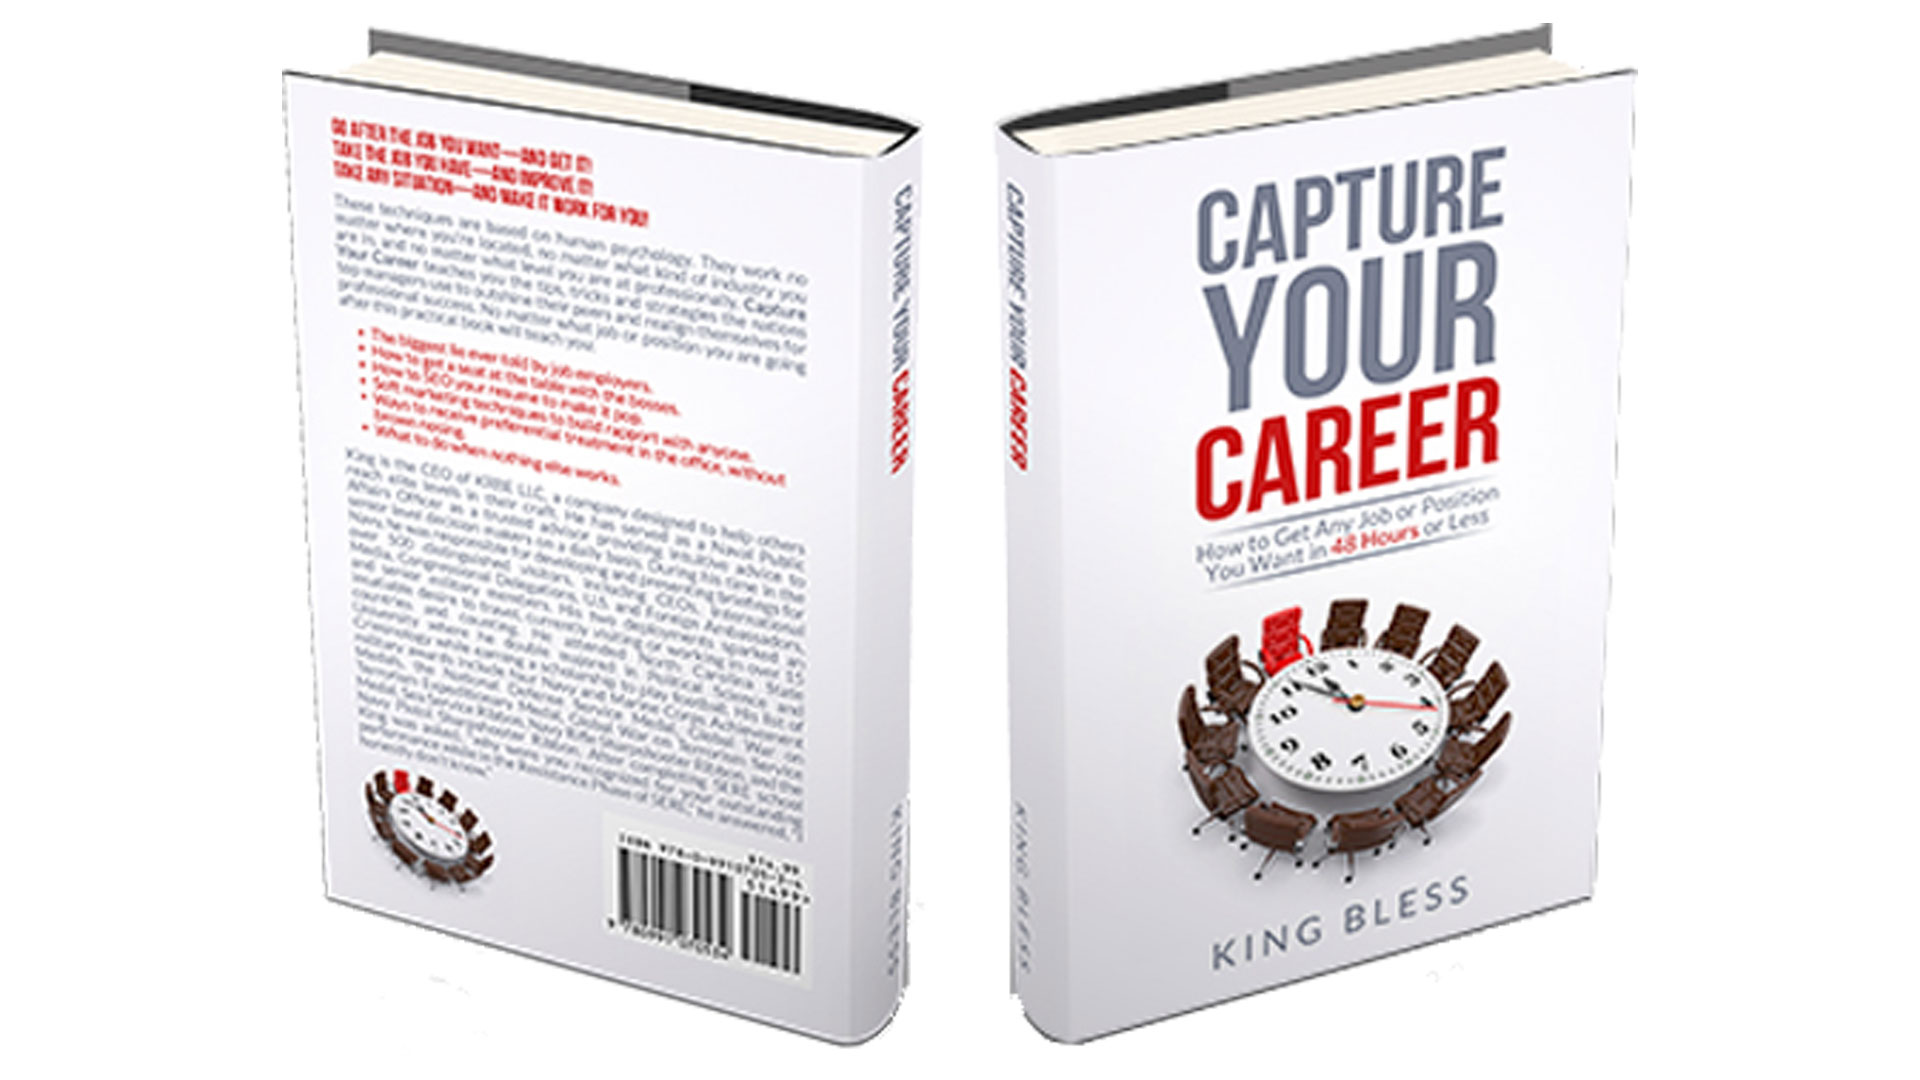 Capture Your Career